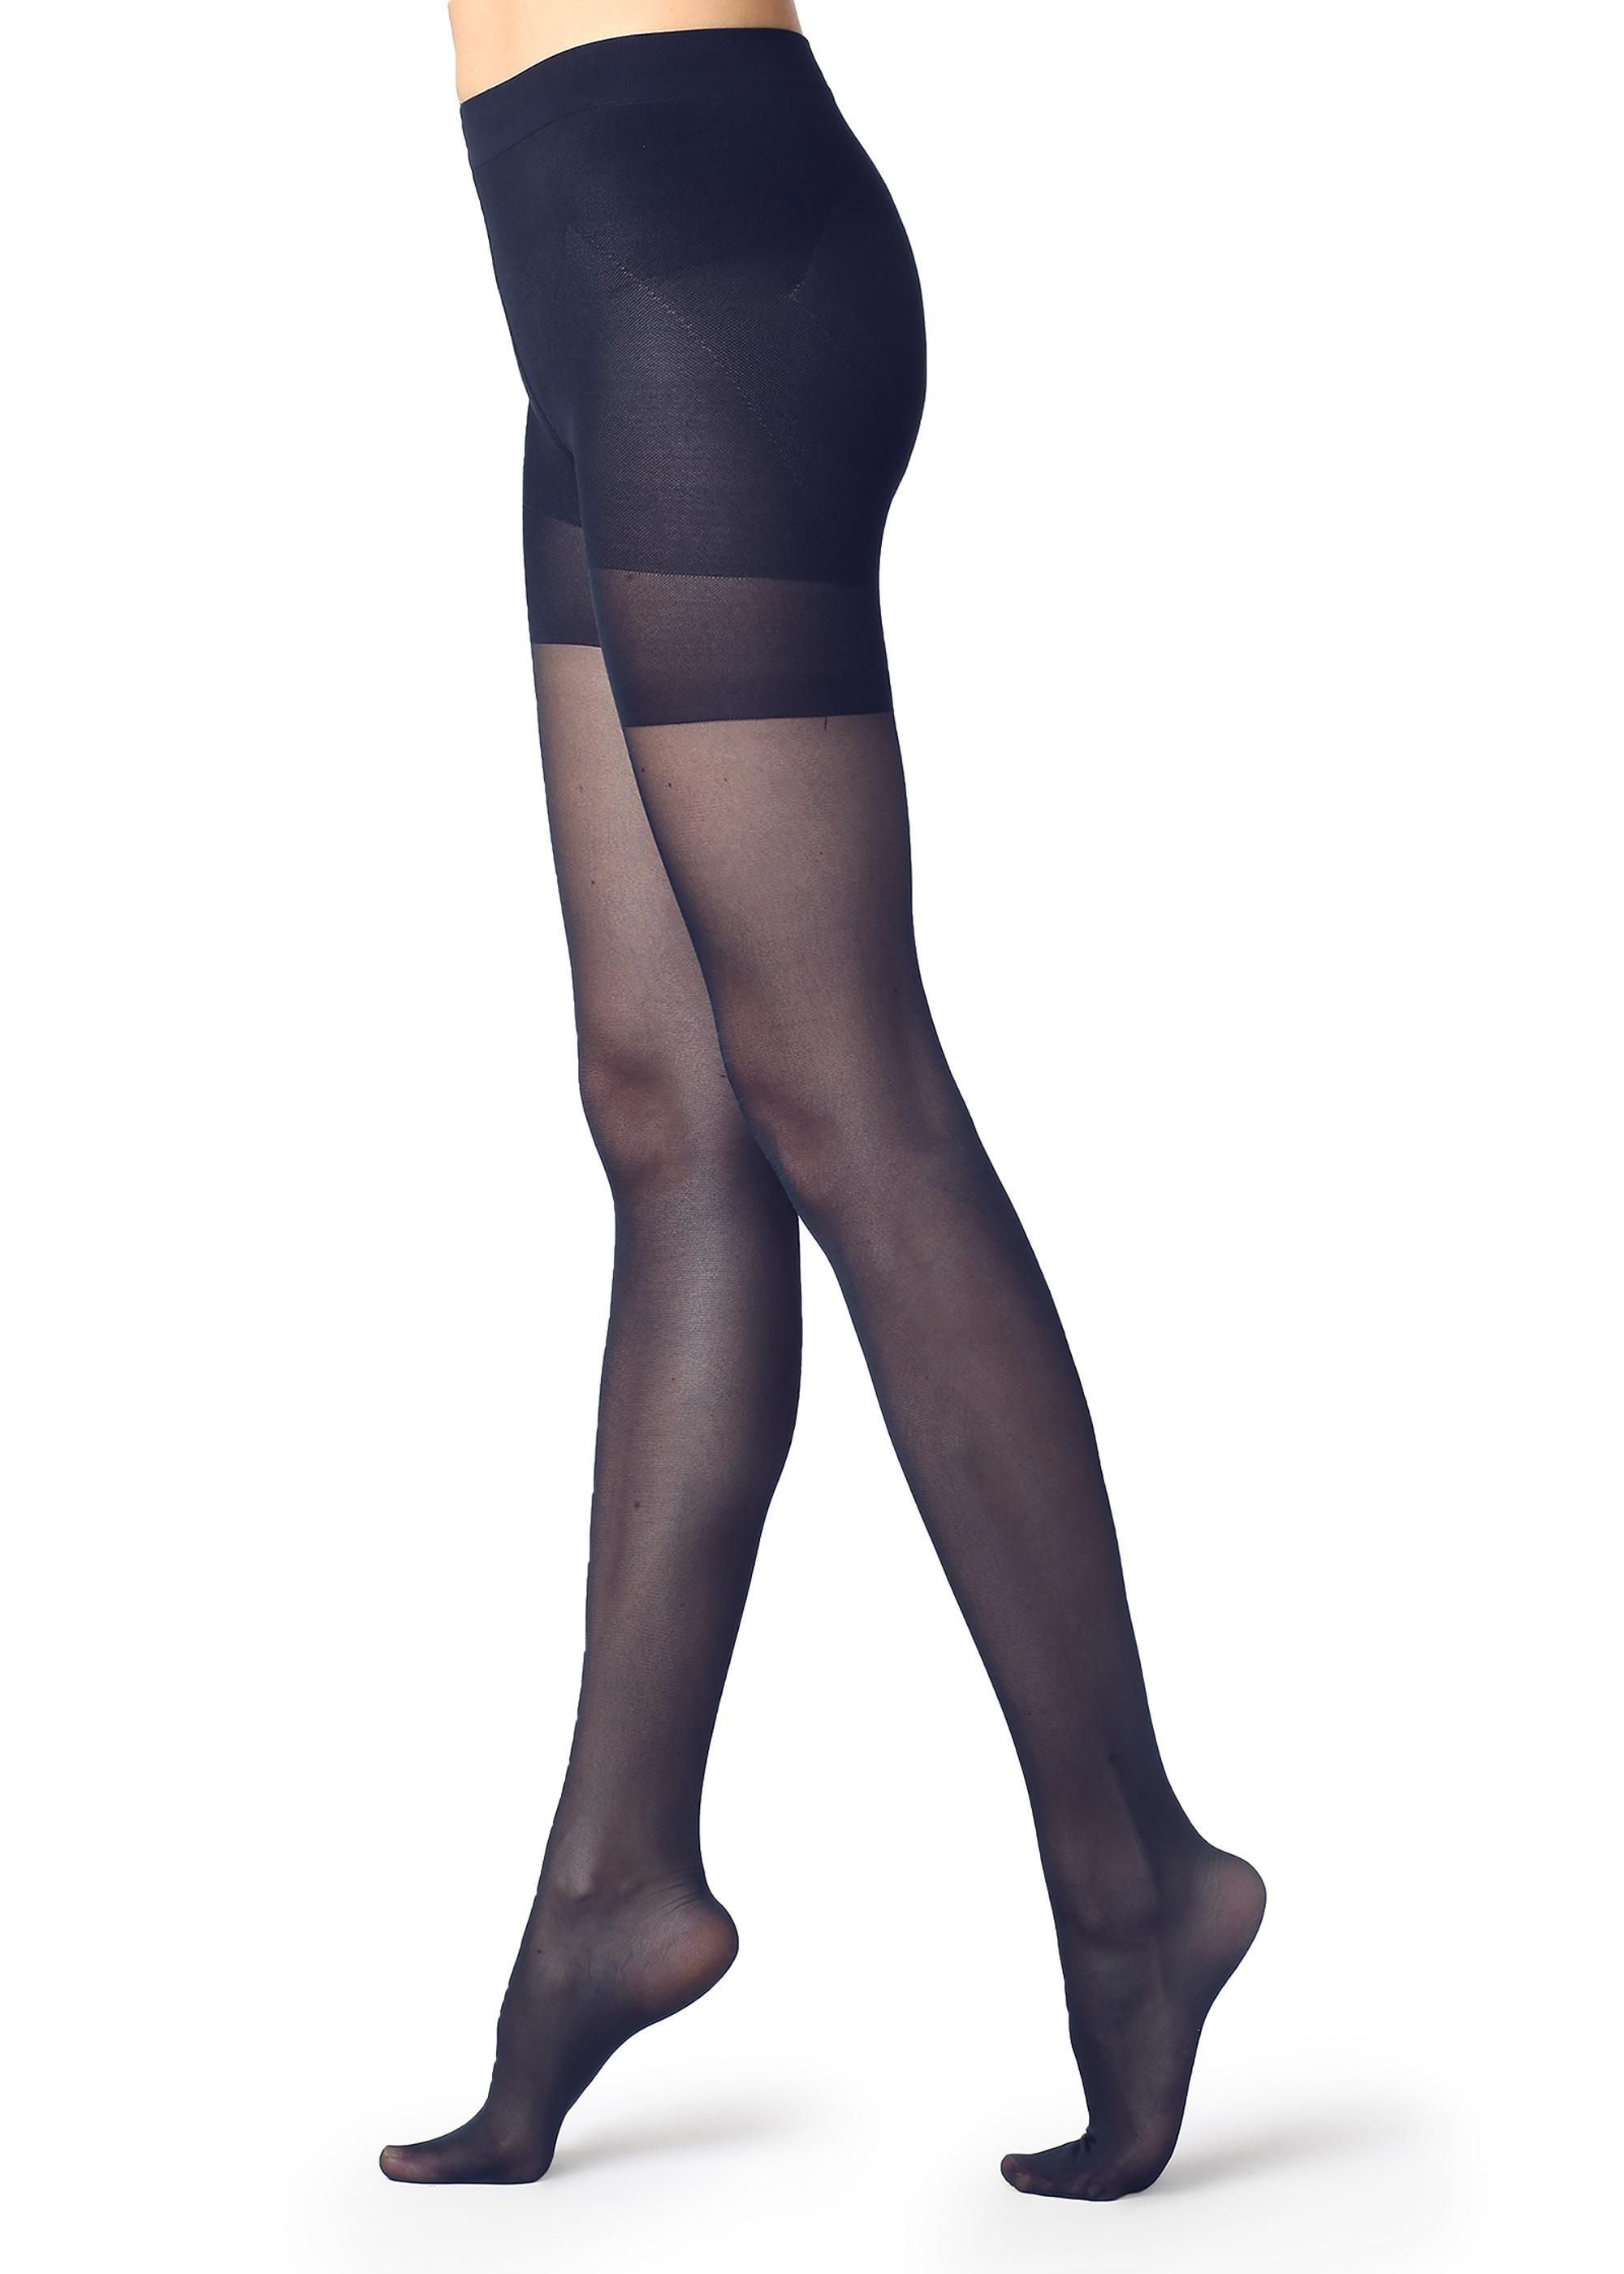 210b4367b1a7c Take a look at Calzedonia's 30 Denier Shaping Sheer Push-Up Tights on our  official website. Experience our long history of tradition and quality.